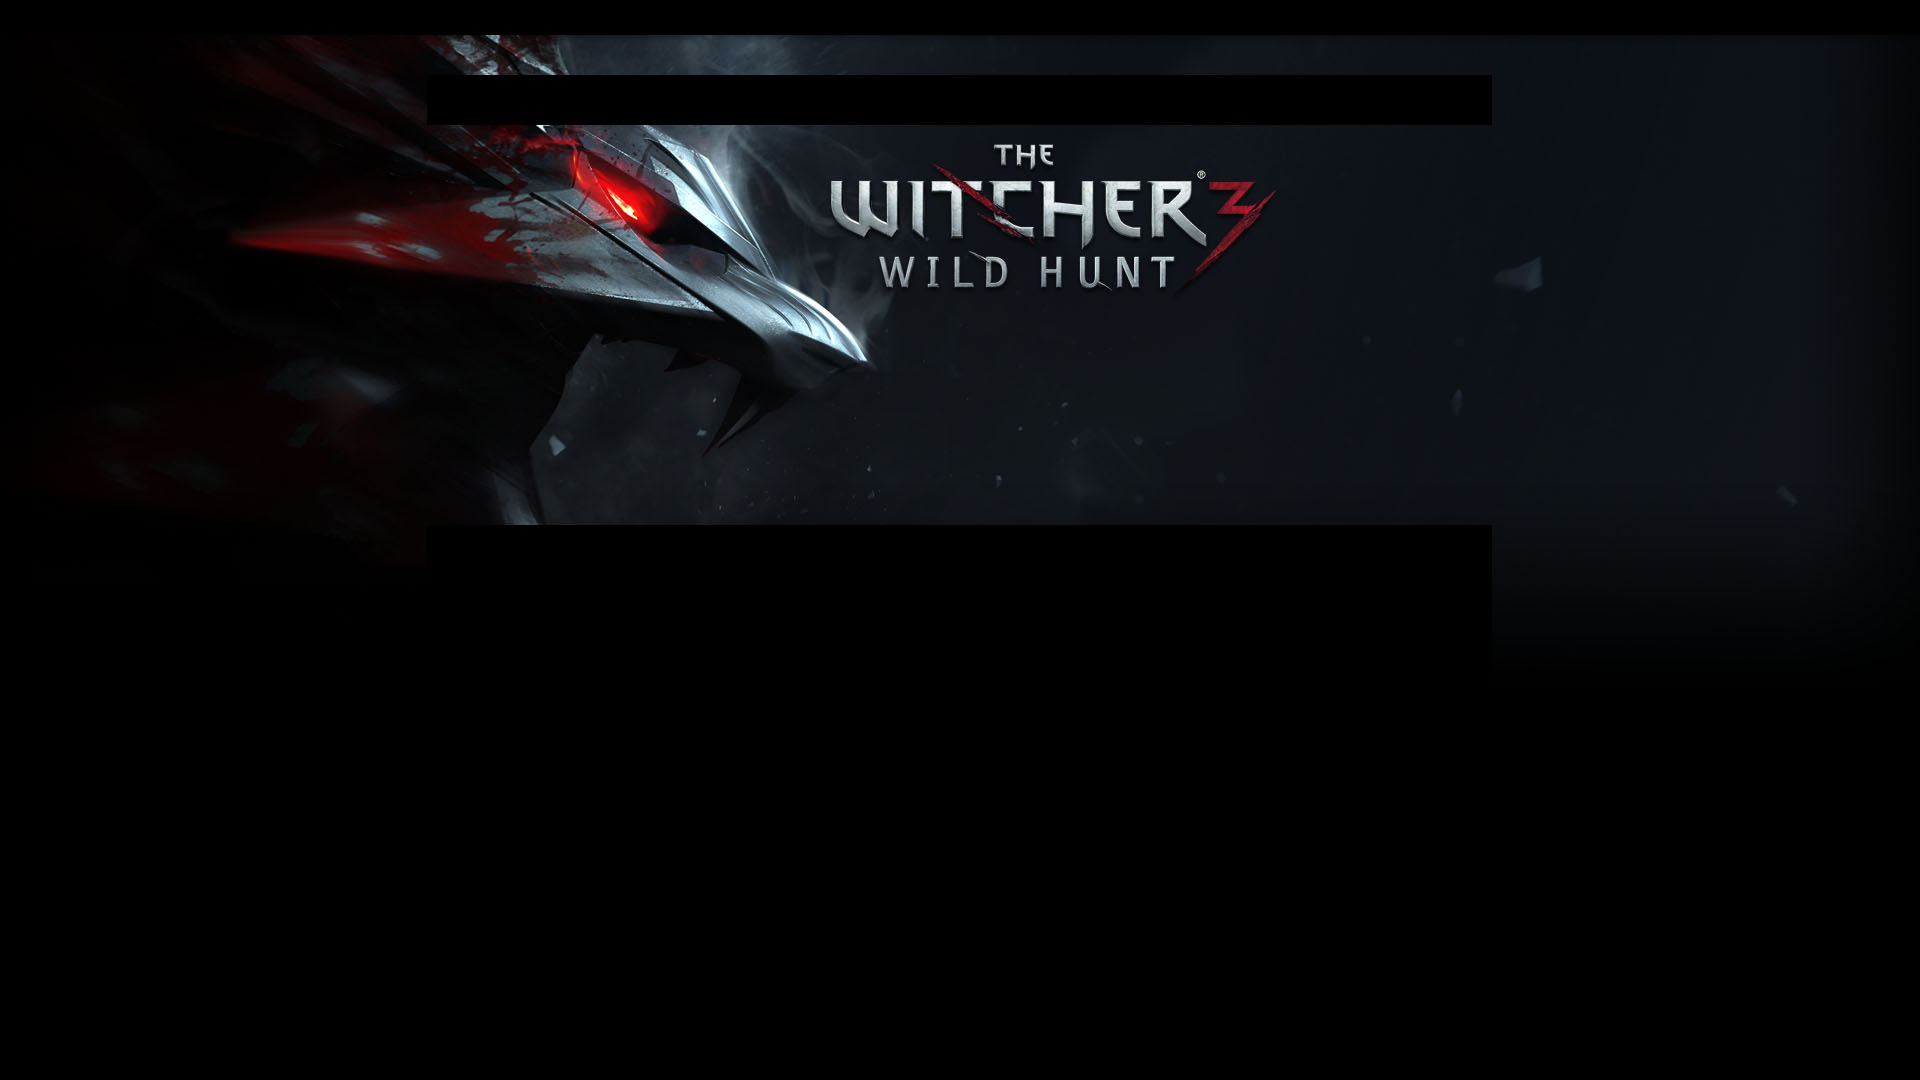 Witcher 3: Wild Hunt video game